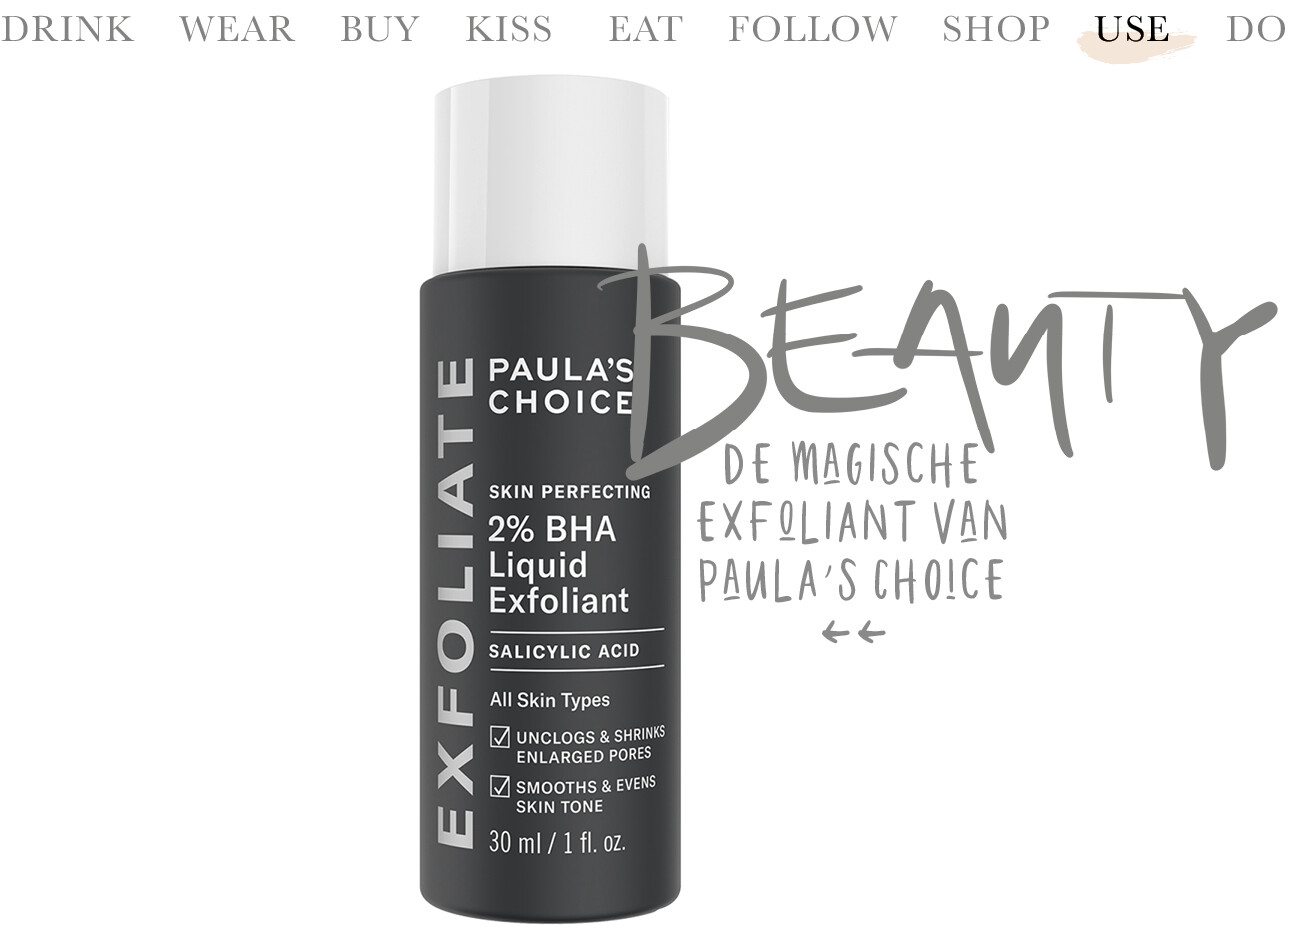 Today we use de magische exfoliant van Paula's Choice